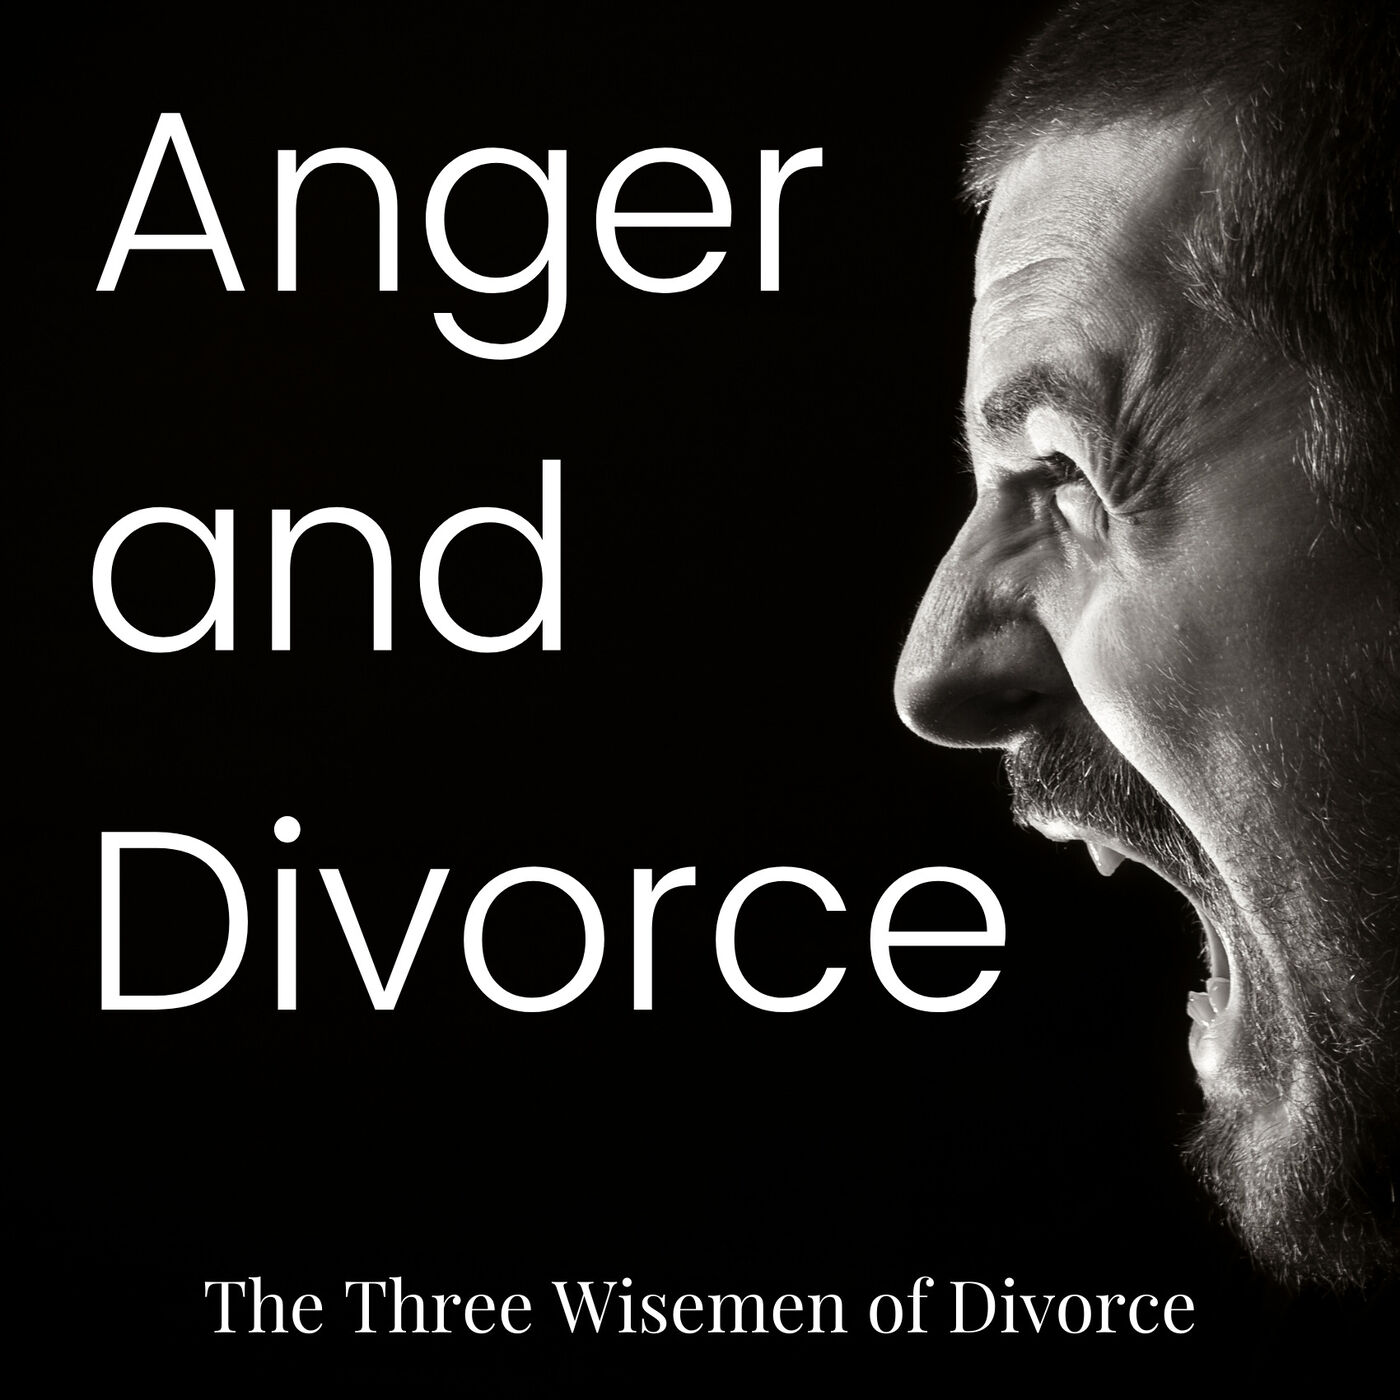 Anger and Divorce